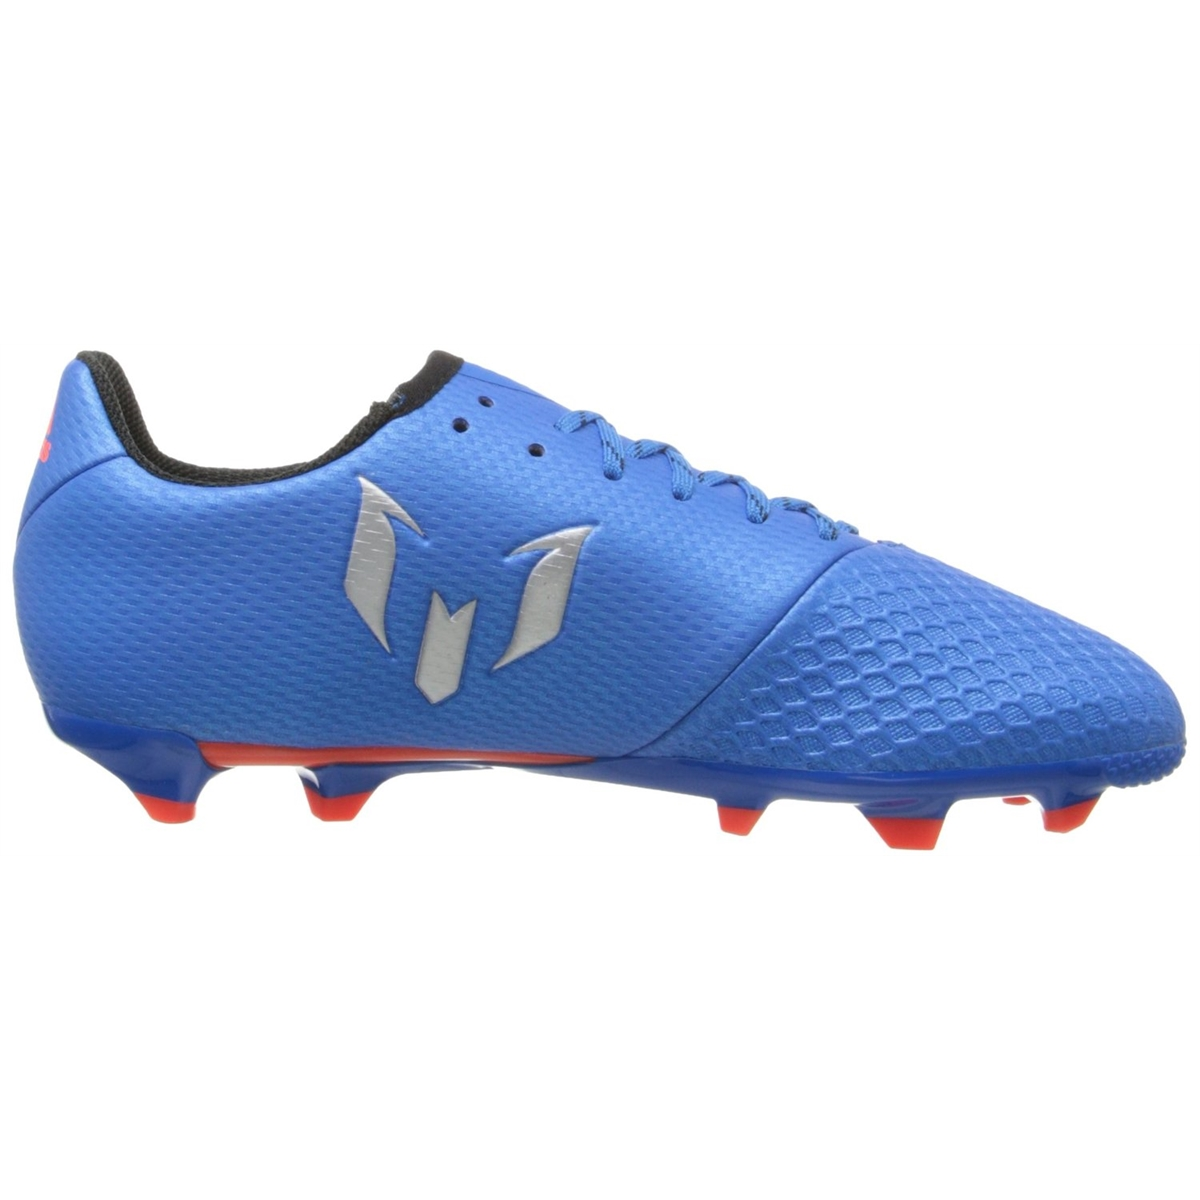 soccer adidas shoes for boys